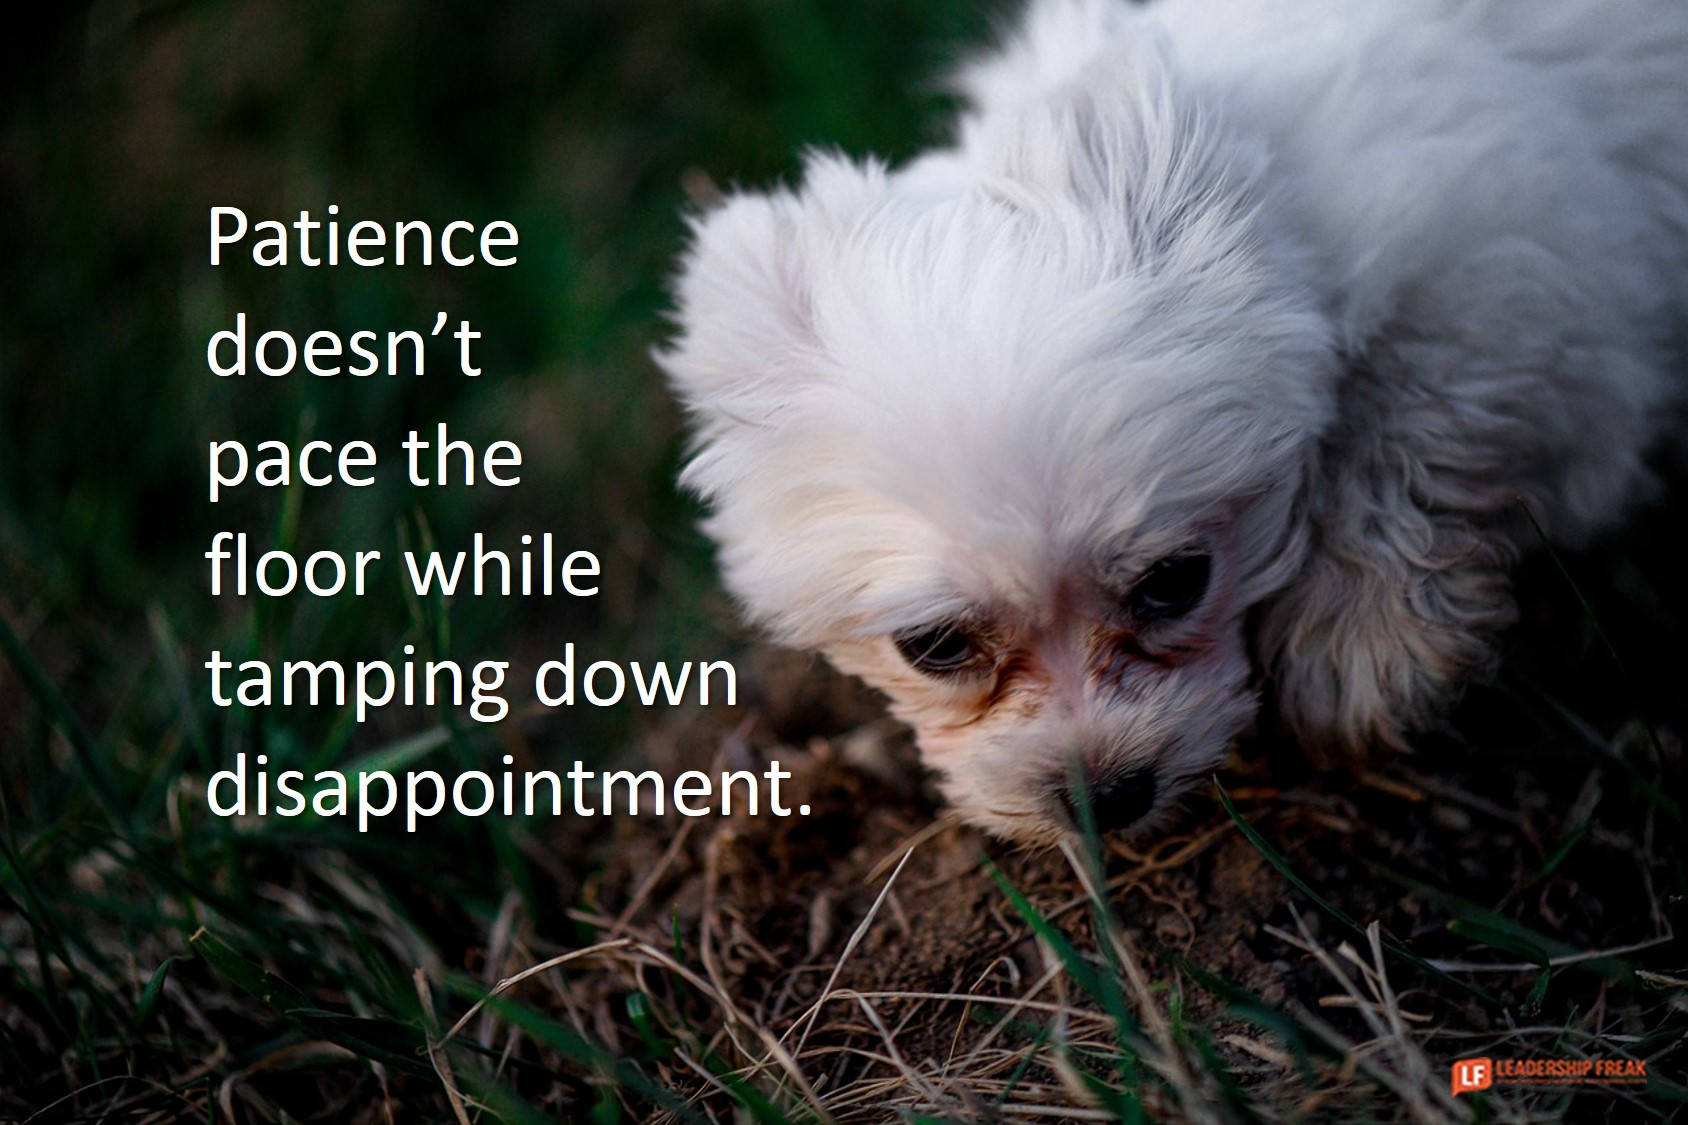 Disappointed puppy.  Patience doesn't pace the floor while tamping down disappointment.